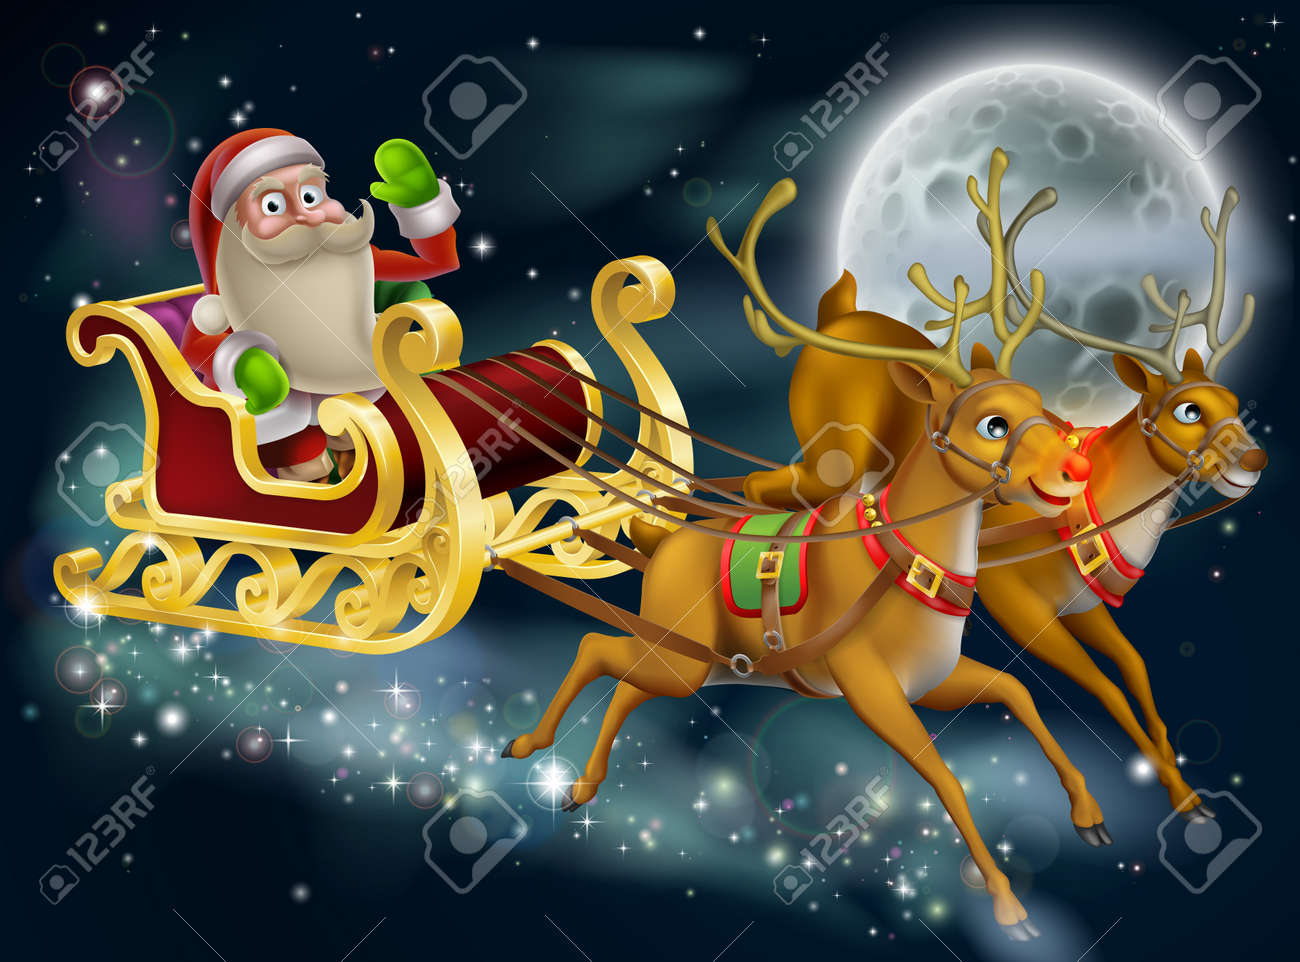 santa claus sleigh scene of santa in his sleigh being pulled through the sky with his - Santa Claus And Reindeers